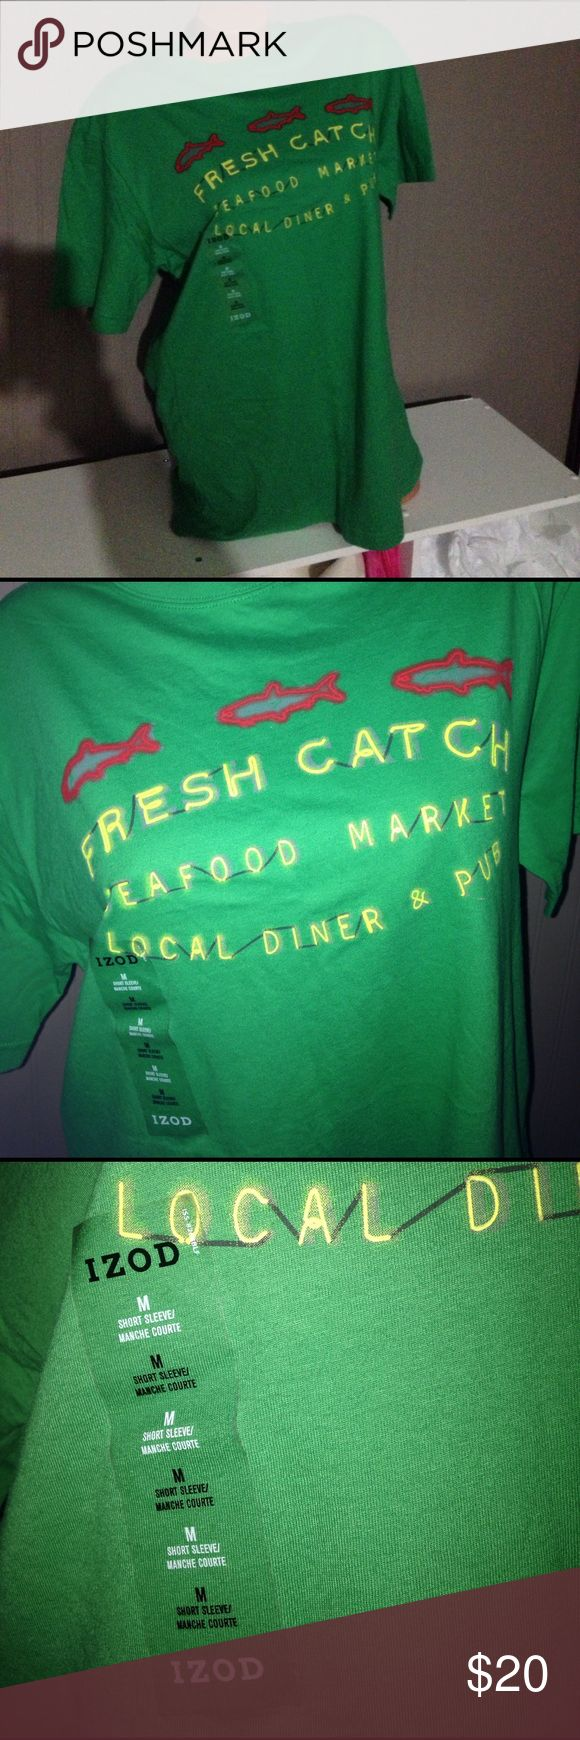 """IZOD men's M green tshirt fresh catch NWT. IZOD. Green w front looks like store sign lights has red fish and yellow letters saying """"Fresh catch seafood market local diner & pub. Short sleeve. Nothing on back. Men. Are you a ladies 'Fresh Catch'? ;) Izod Shirts Tees - Short Sleeve"""